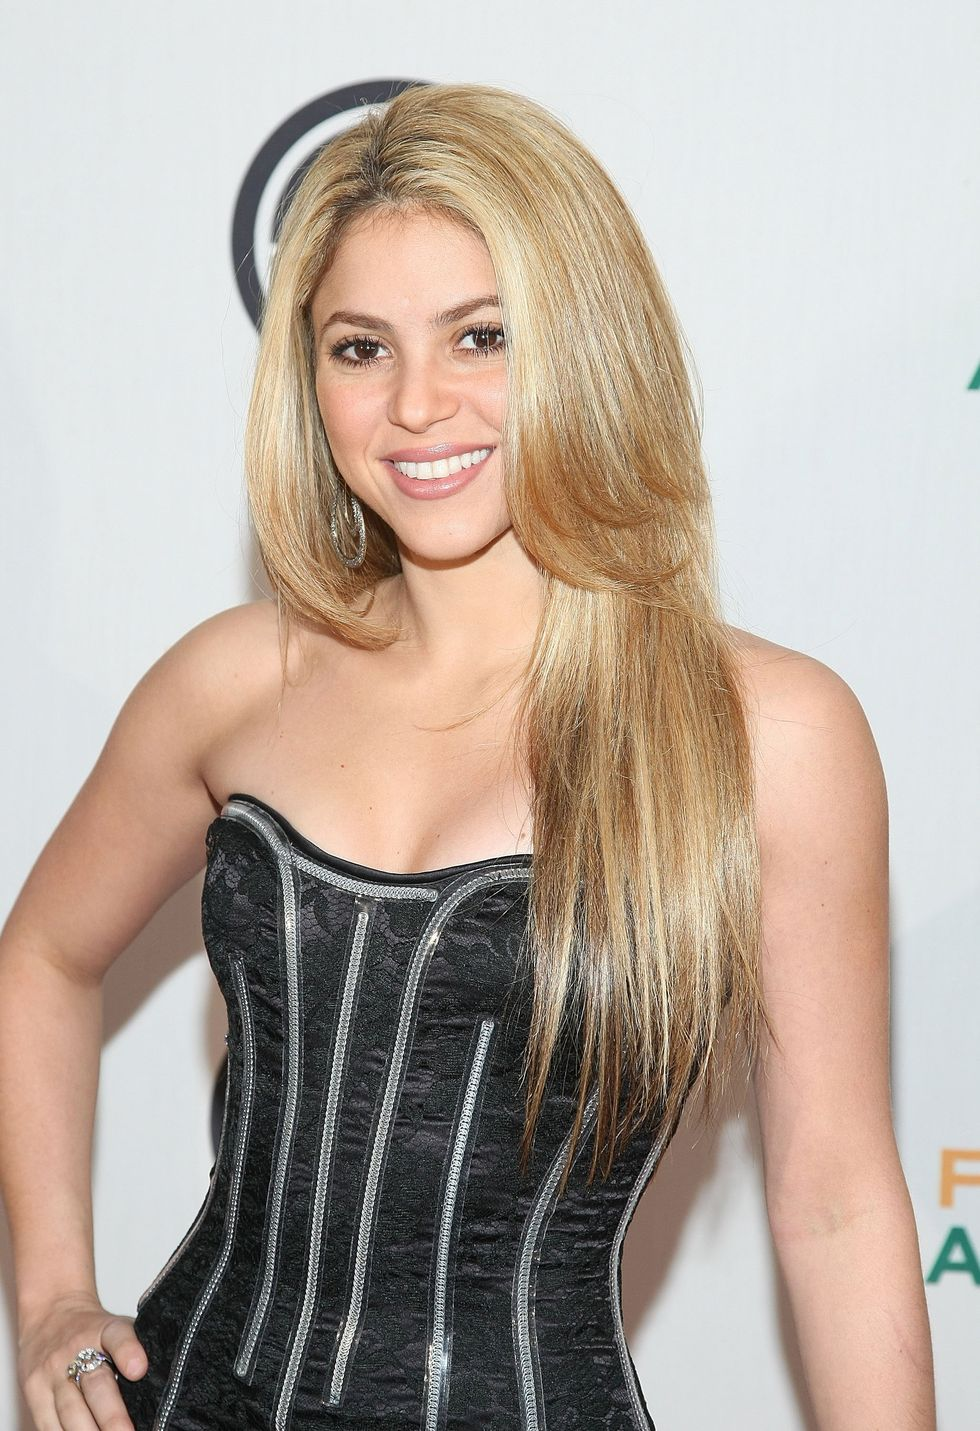 shakira-performs-at-the-neighborhood-inaugural-ball-in-washington-01